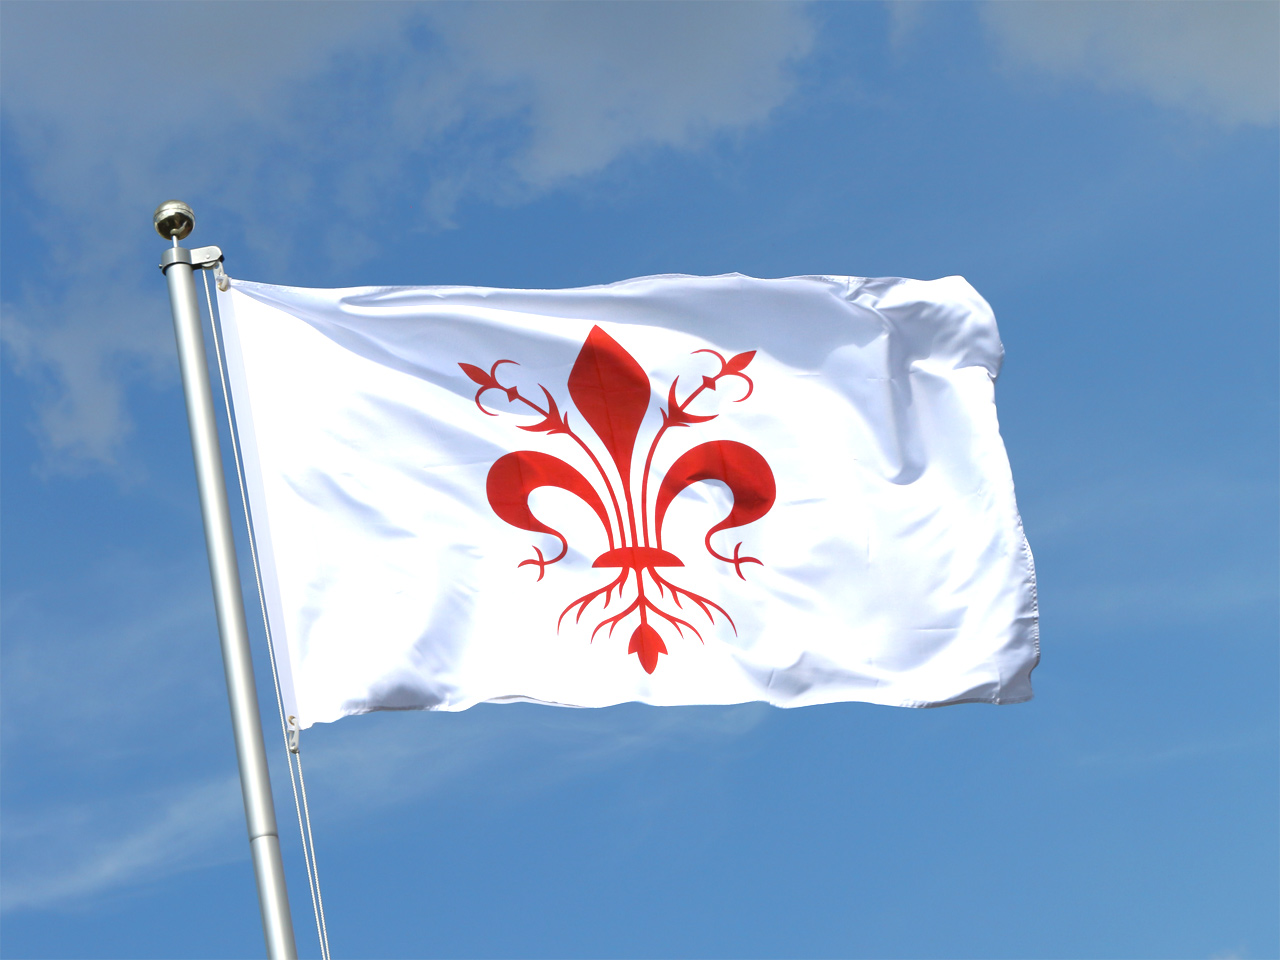 Buy florence flag 3x5 ft 90x150 cm royal flags for The flag is